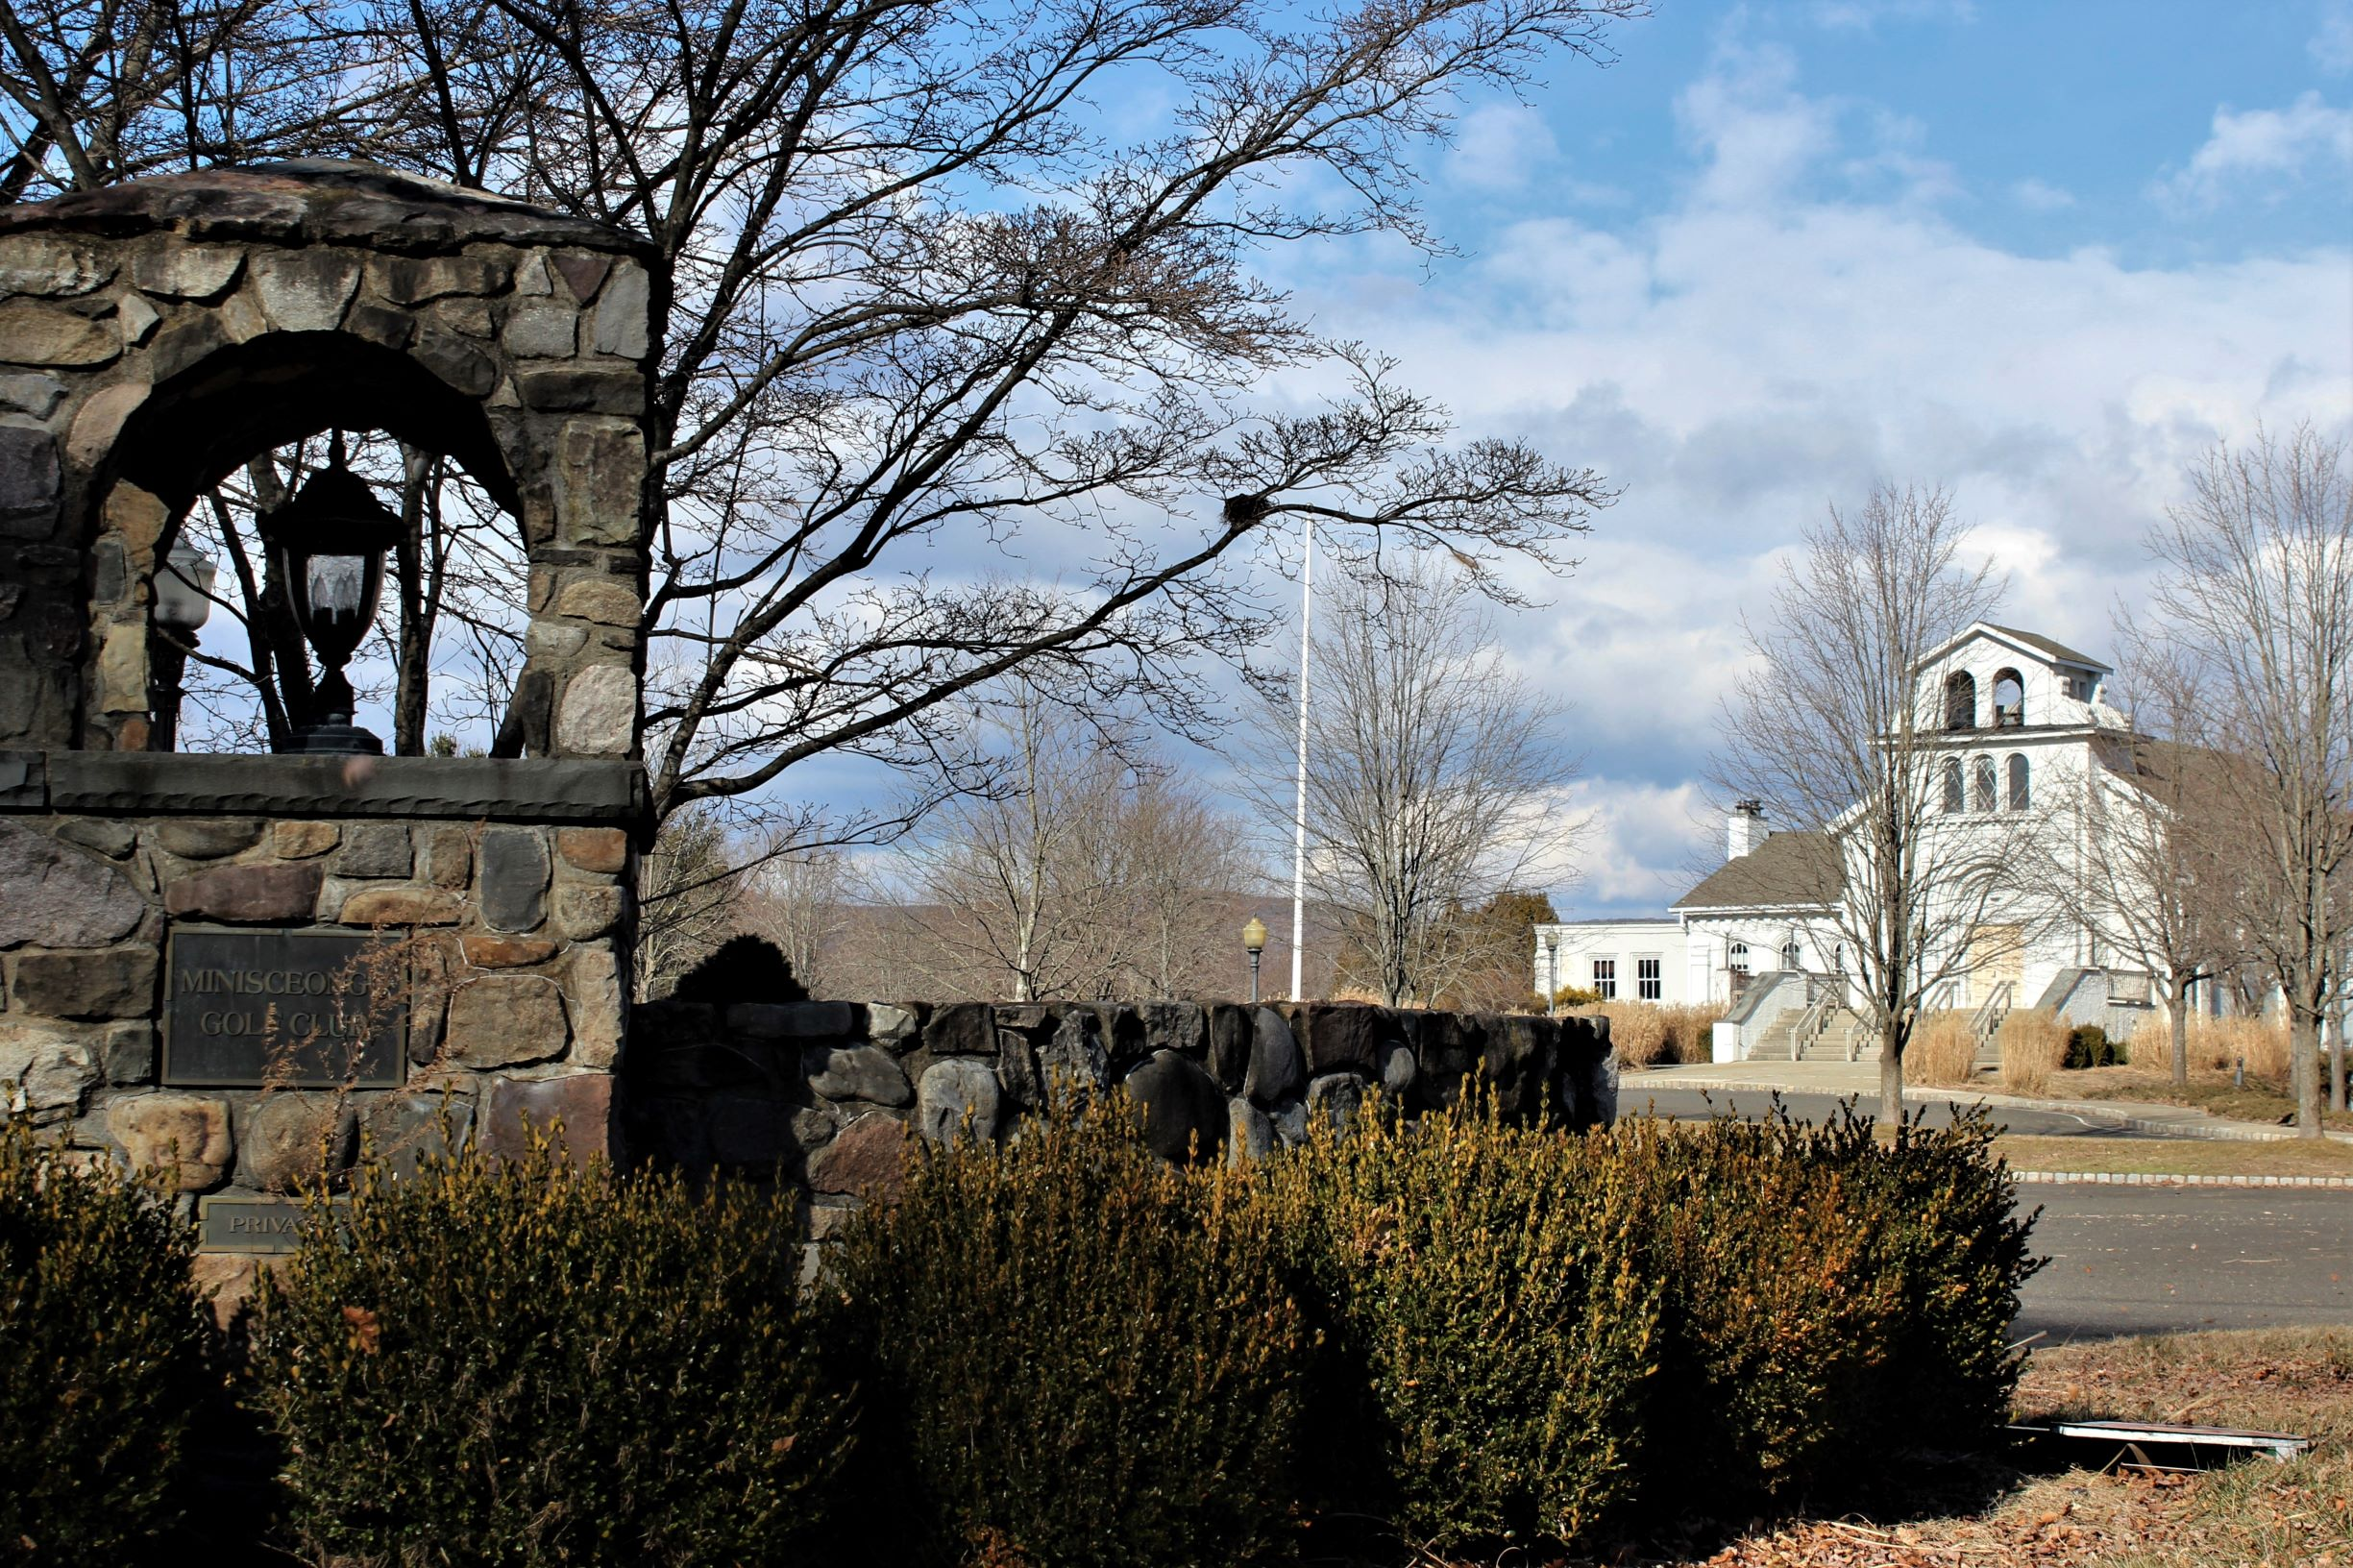 What's Ahead for Northeast Ramapo?  Town Board Unanimously Approves Moving Forward to Change Codes